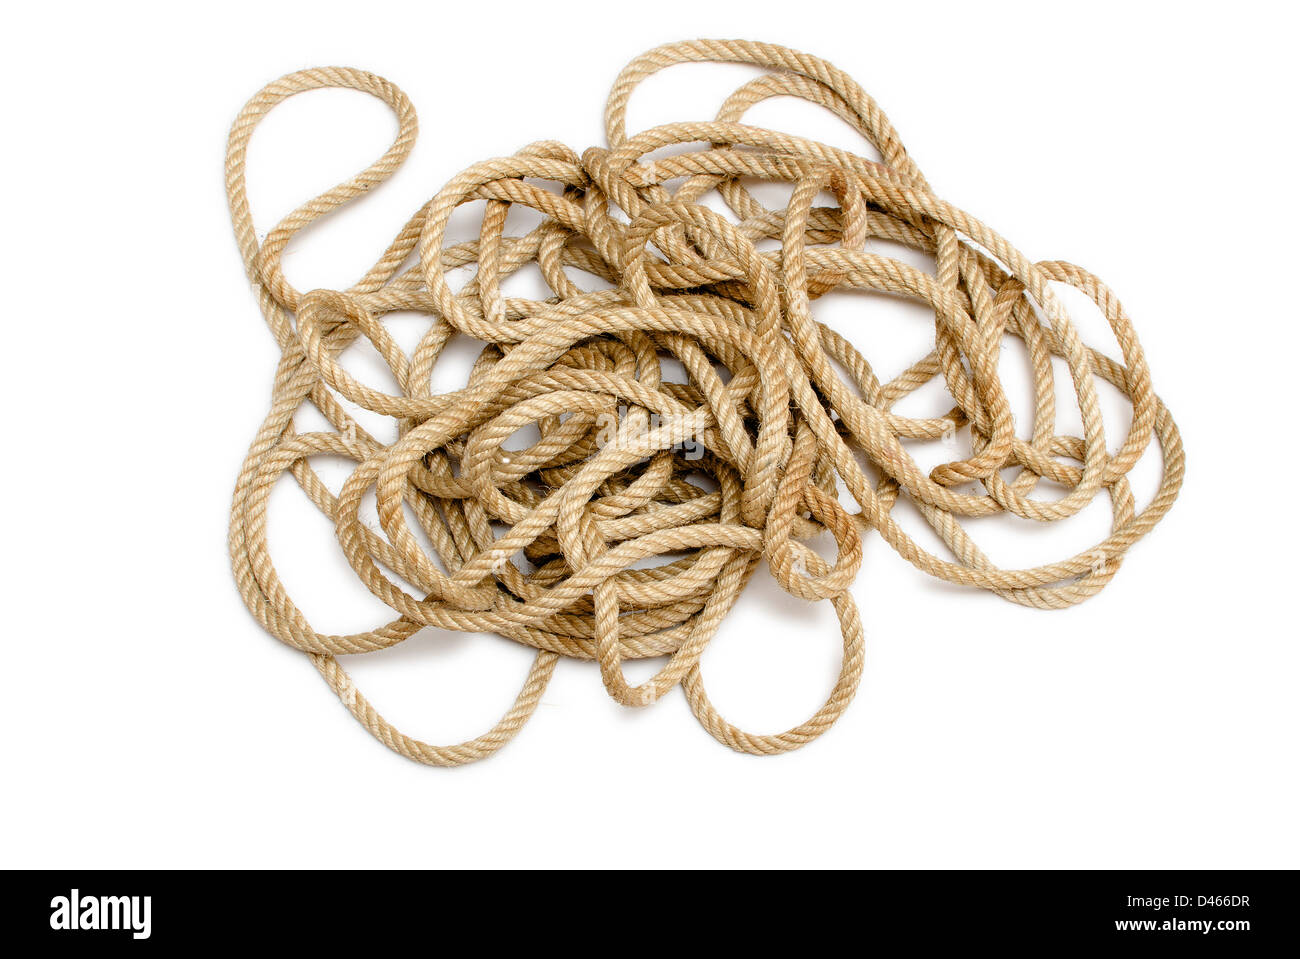 Mess rope against white background - Stock Image